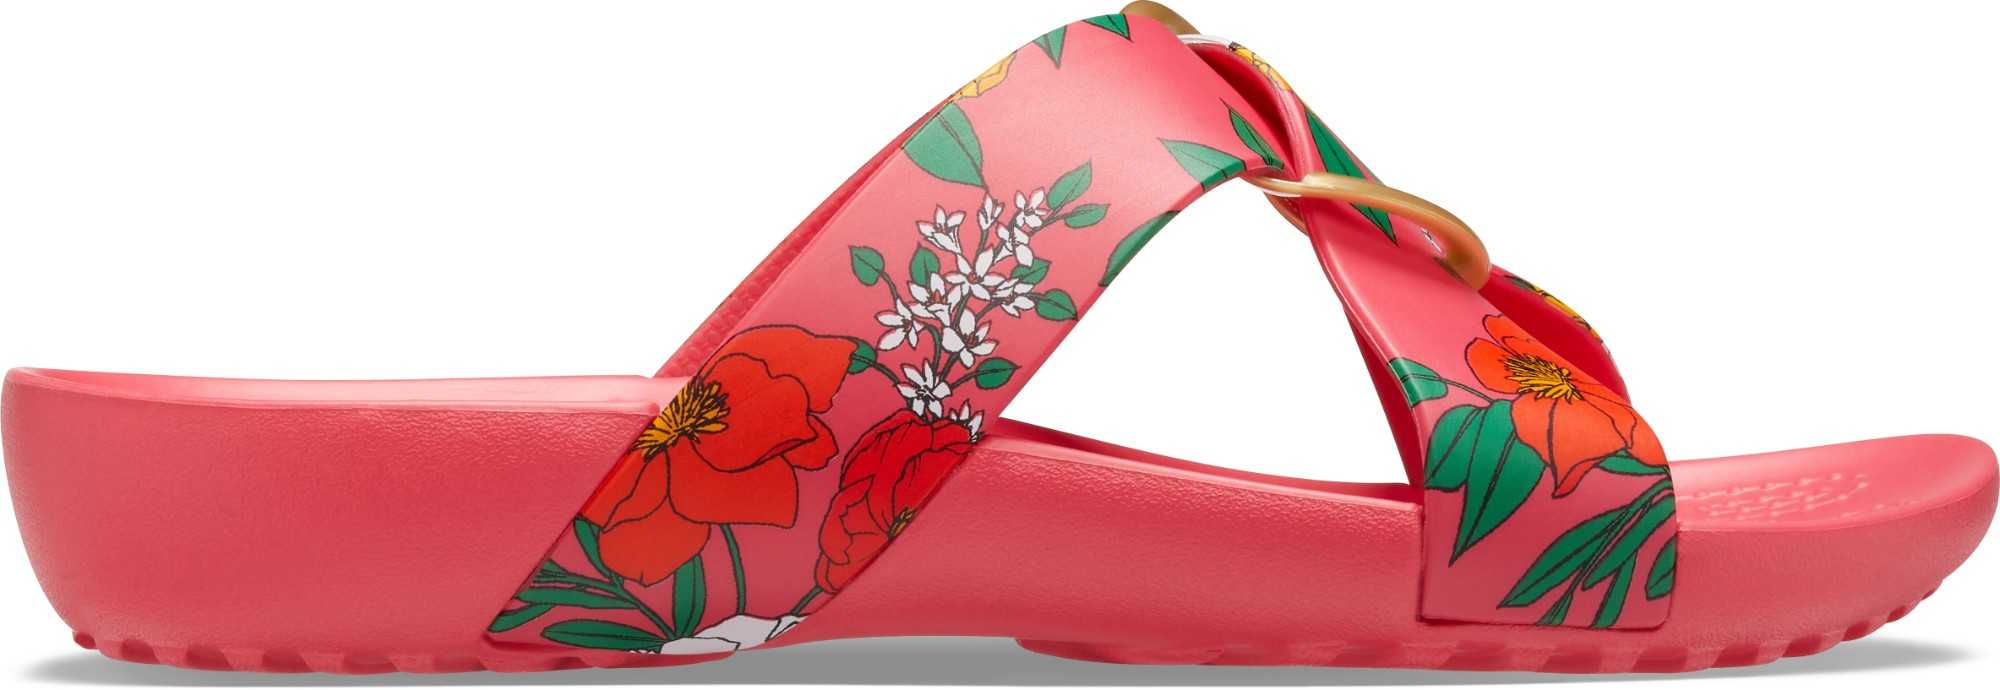 Crocs™ Serena Printed Cross Band Slide Womens Floral/Poppy 42,5